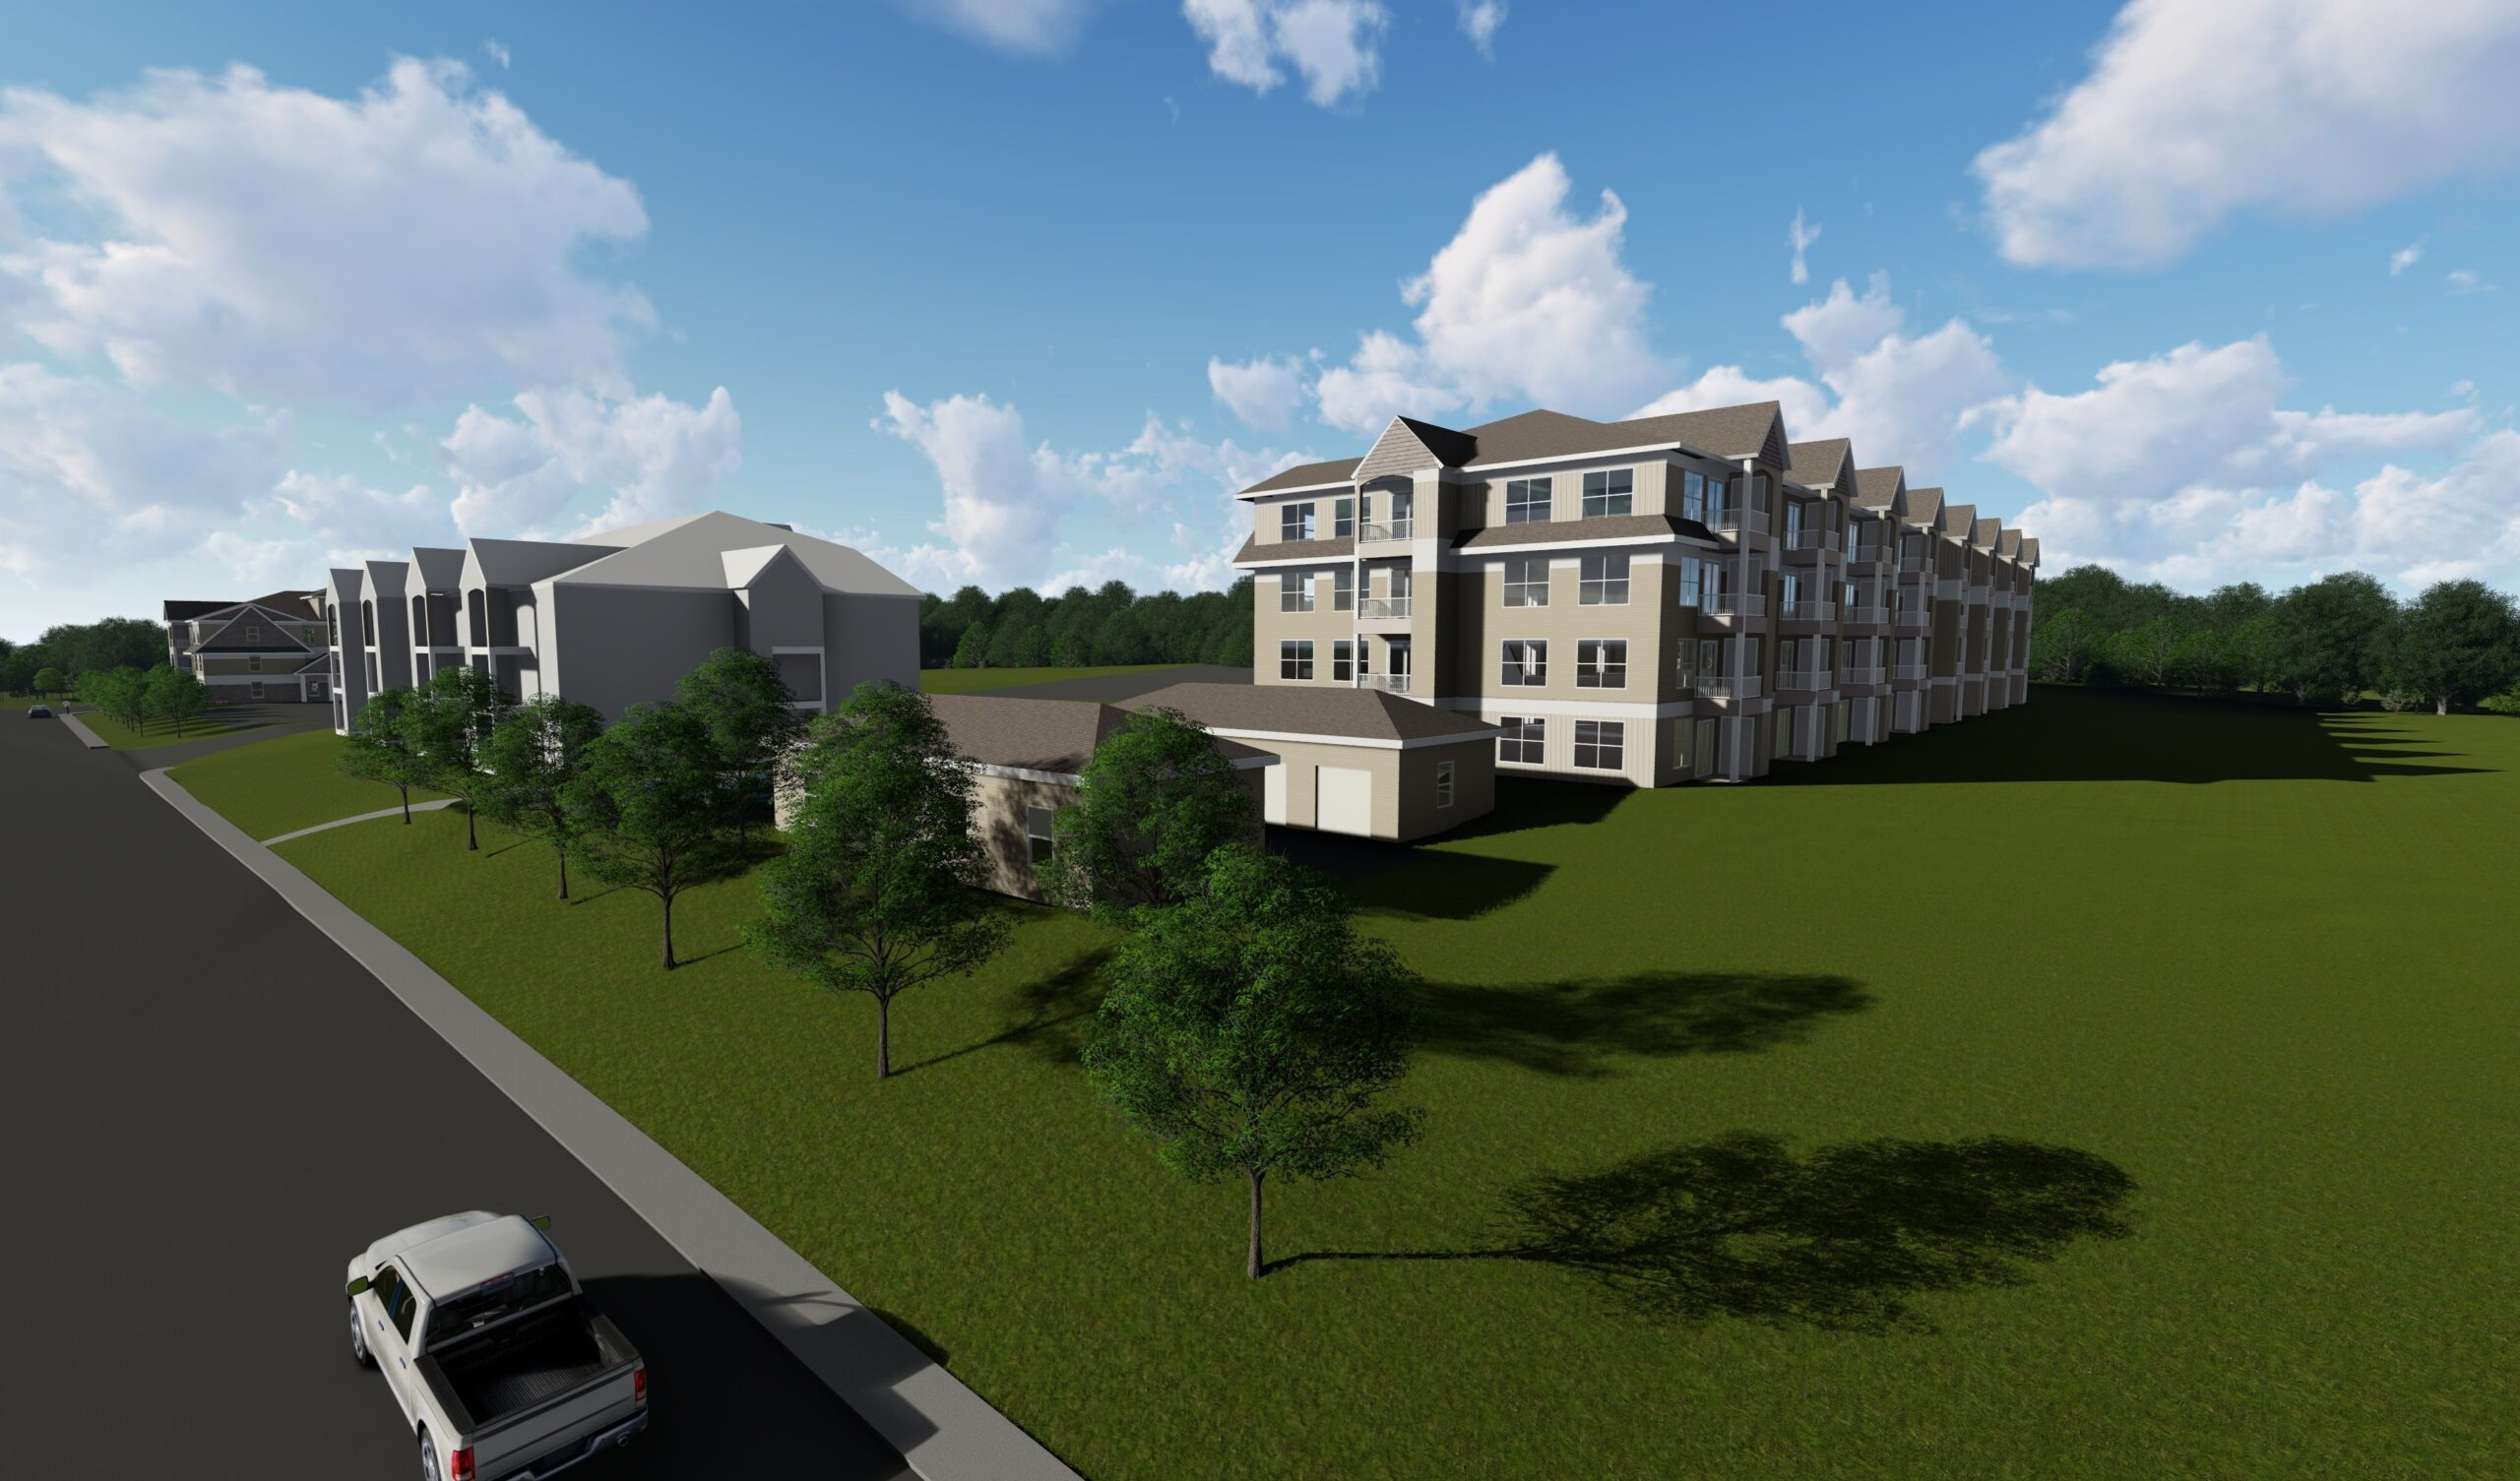 Rendering photo of Traders Row Apartments in Salem, MA